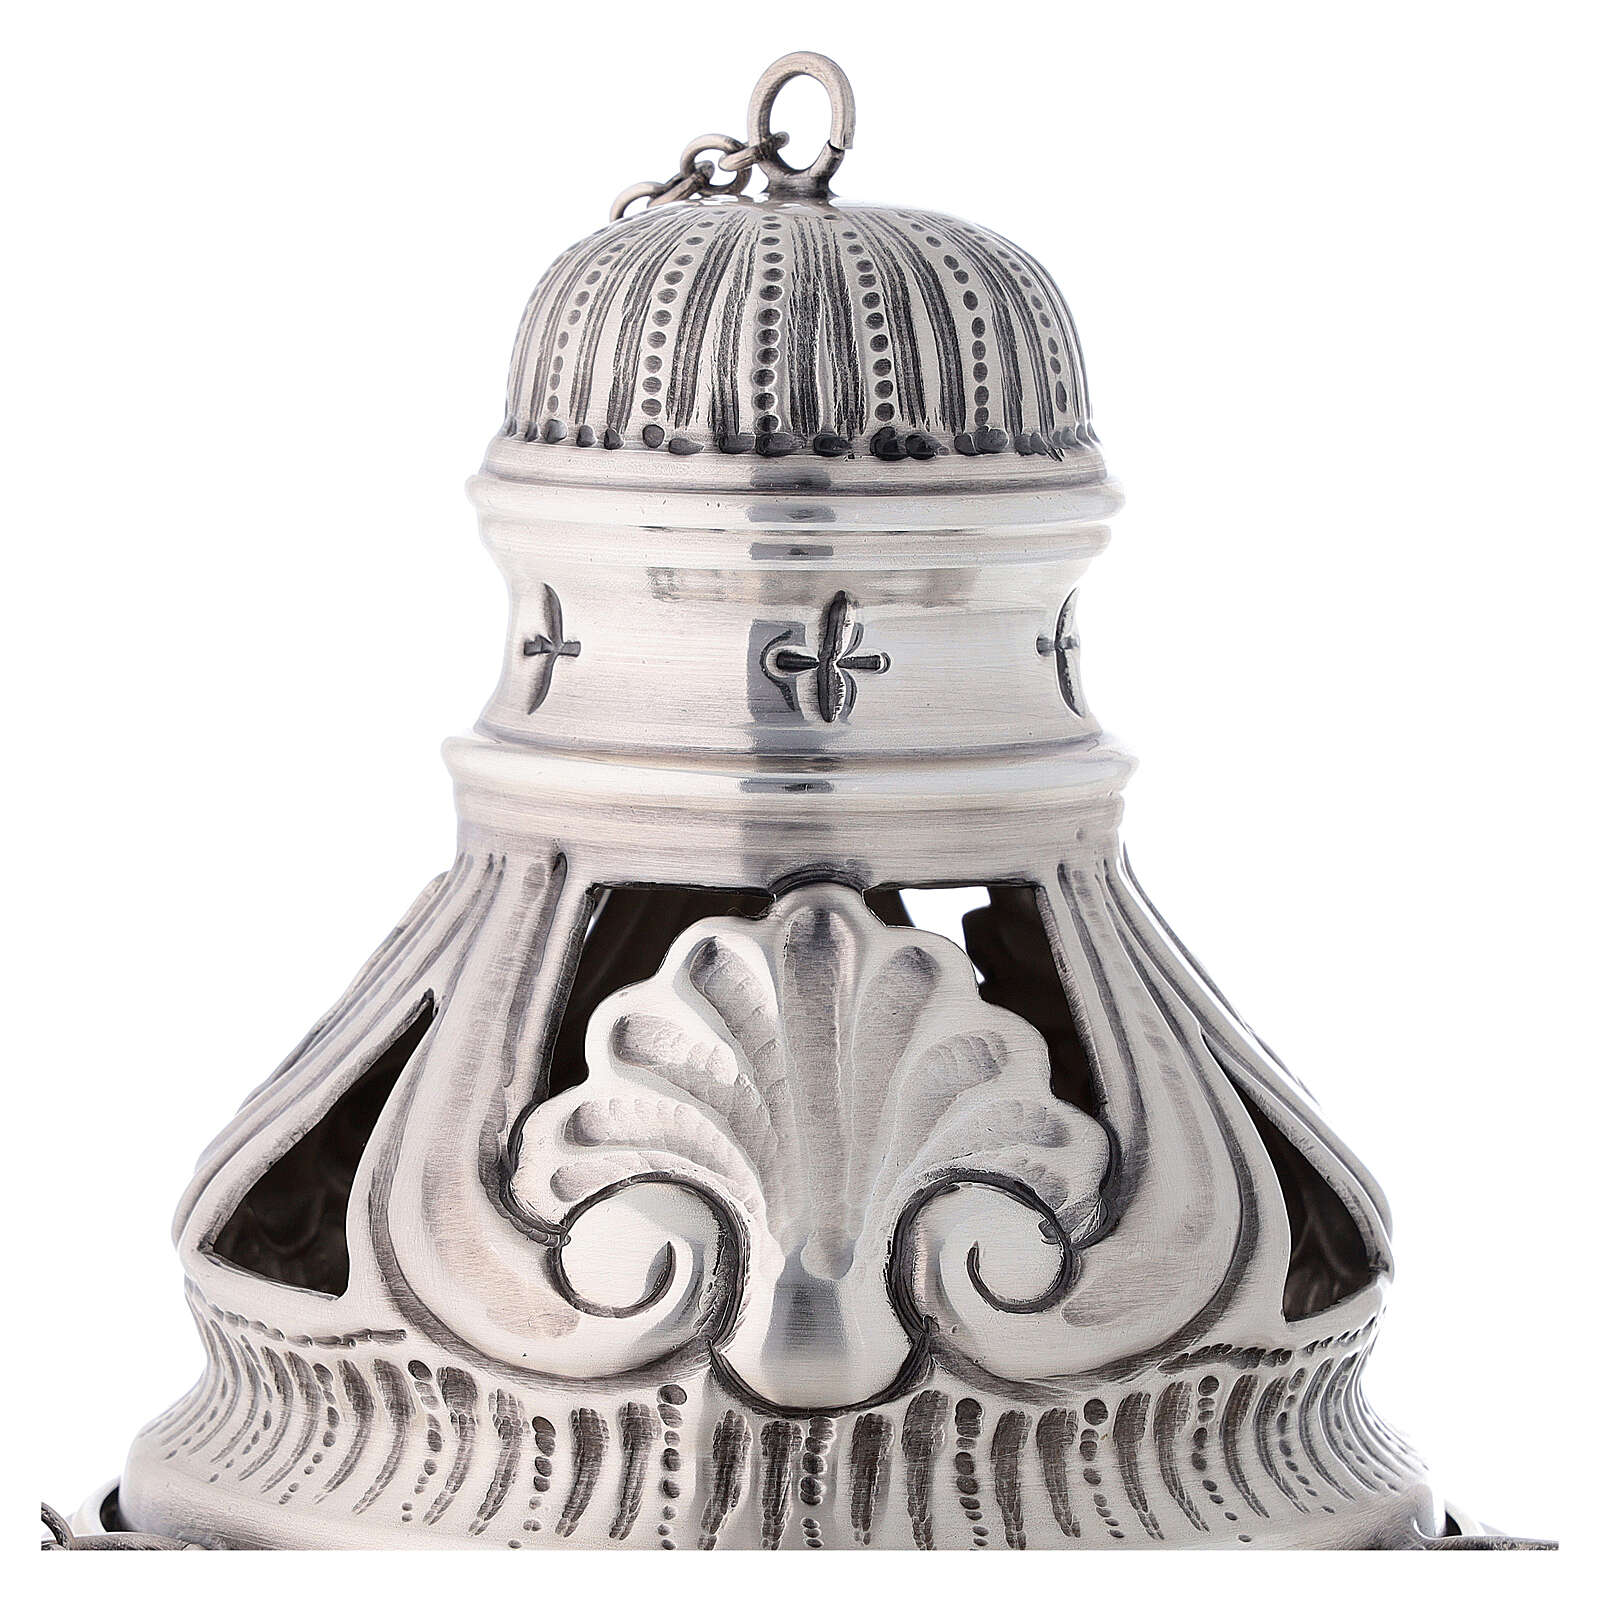 Chiseled thurible and boat with angels silver finish 3